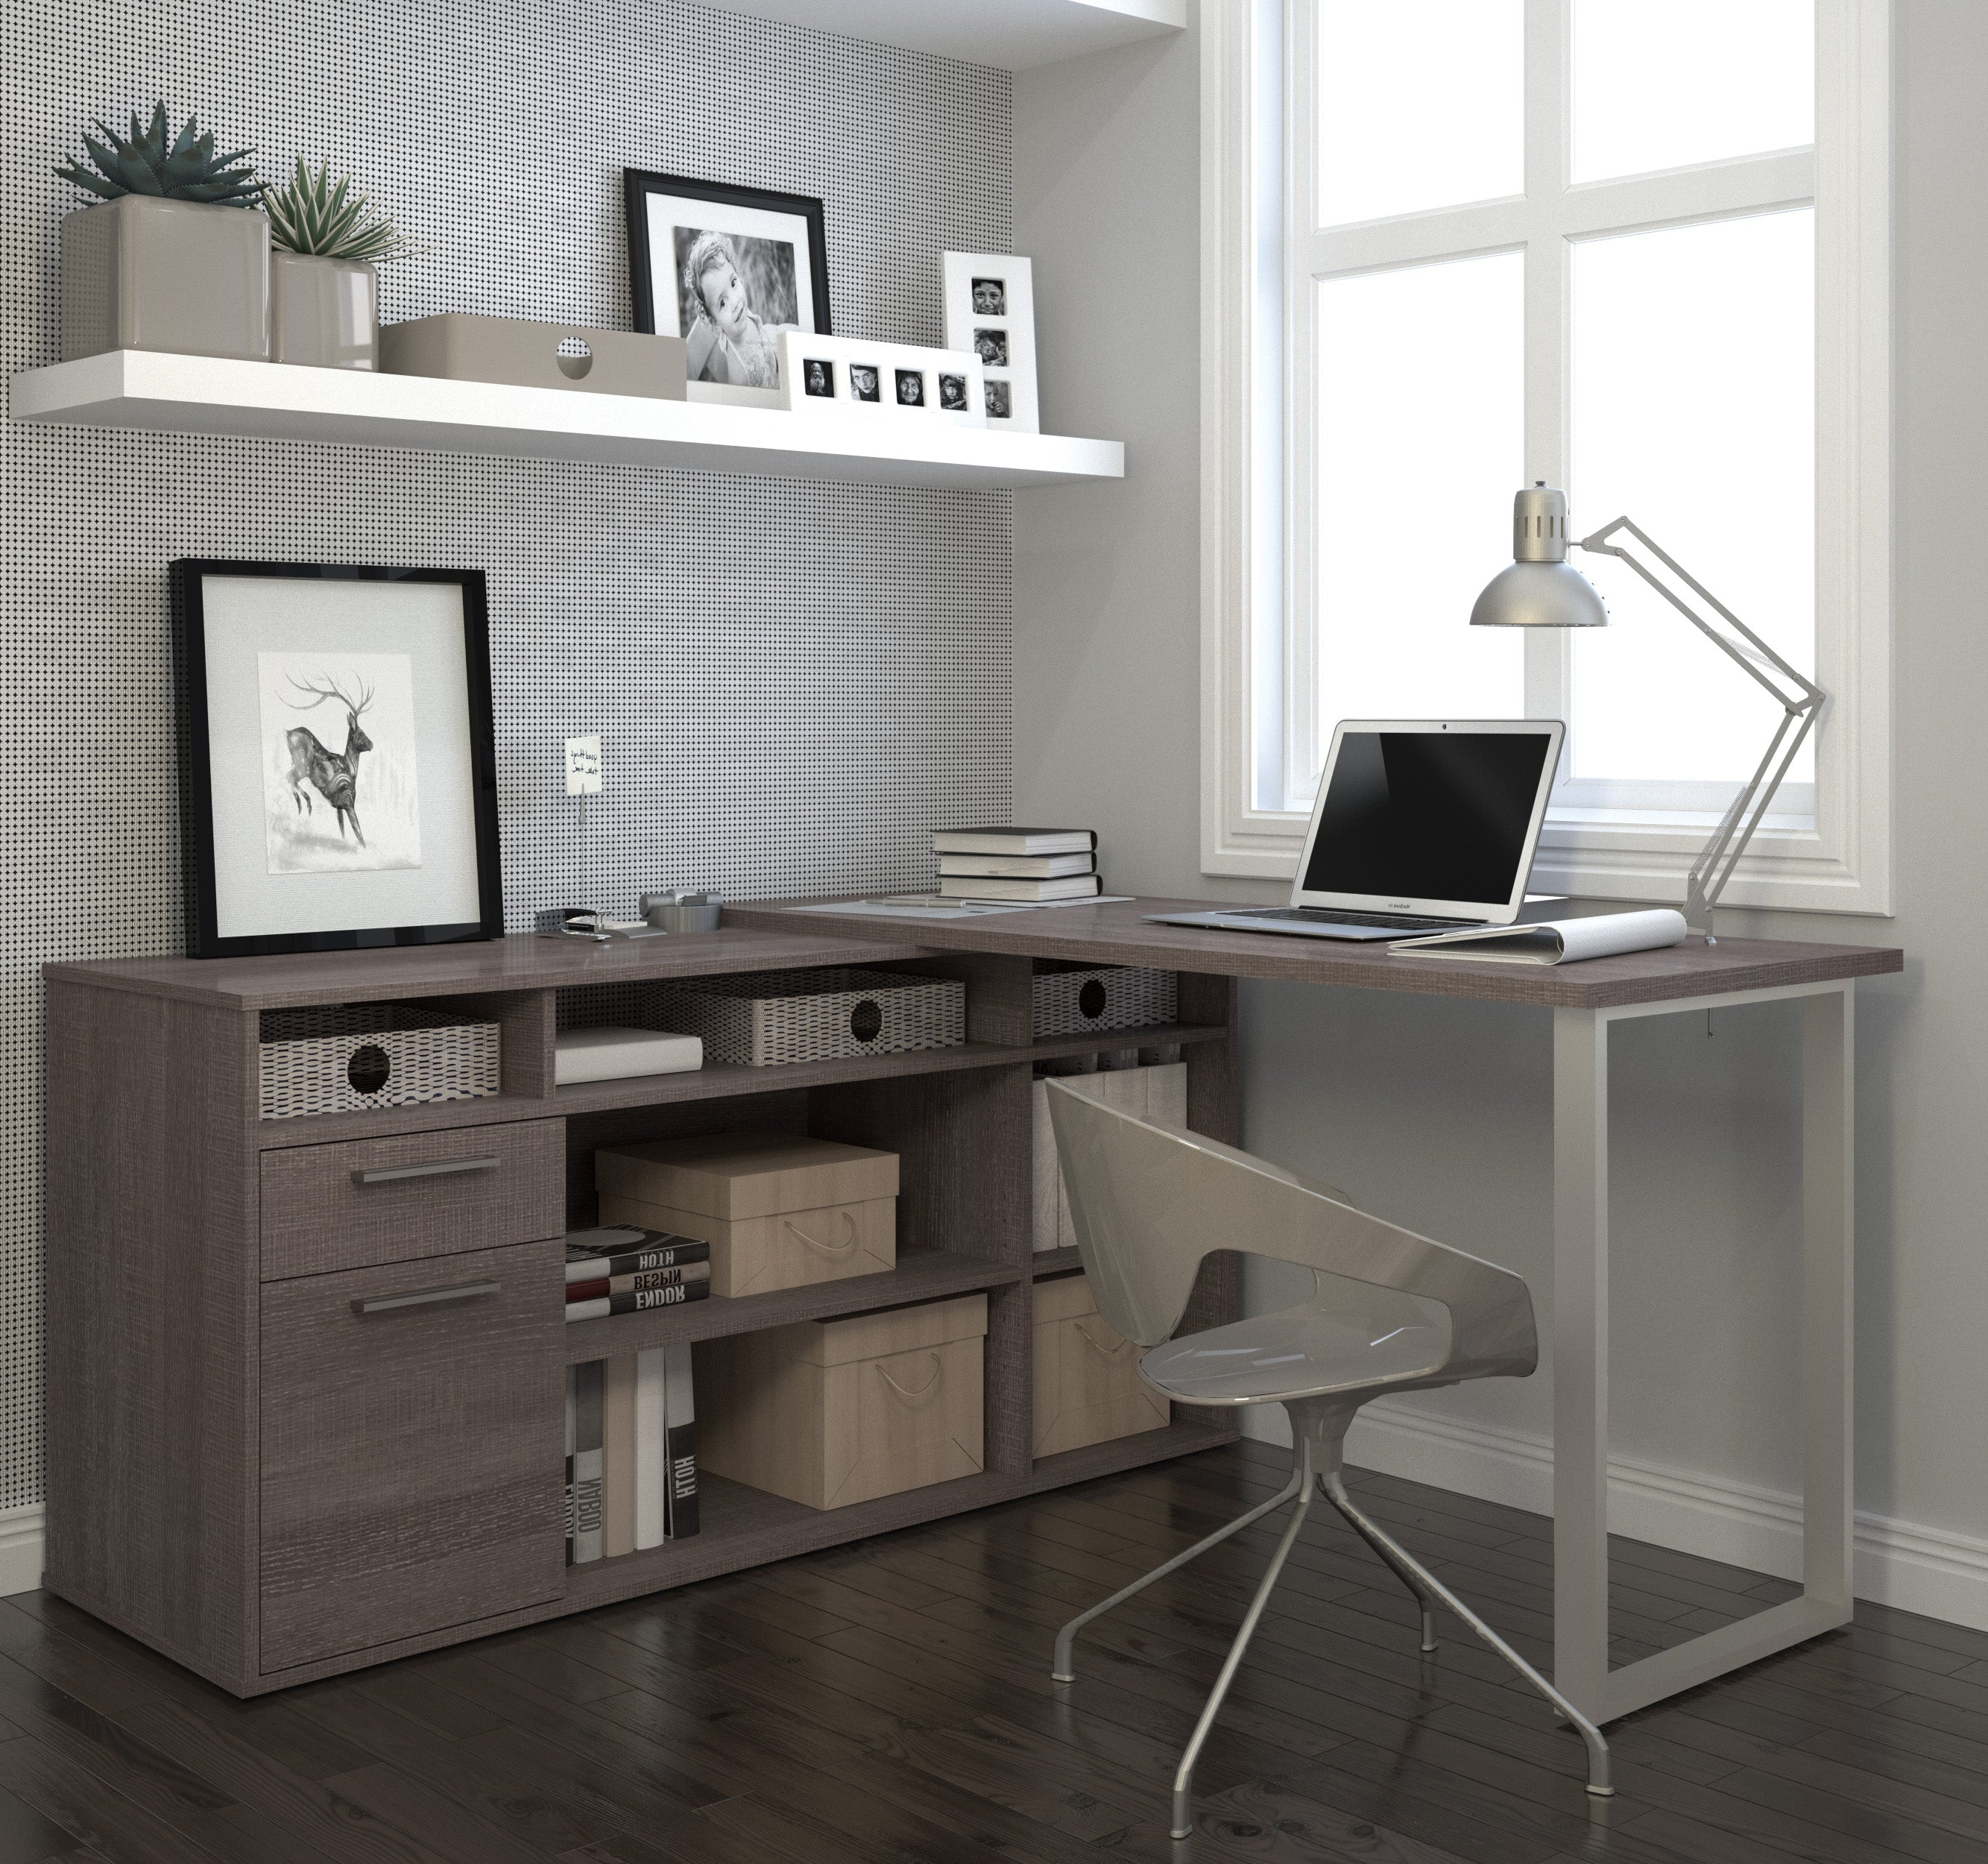 incredible shaped office desk chairandsofaclub. Shaped Office Desk C Itrockstarsco Incredible Chairandsofaclub F